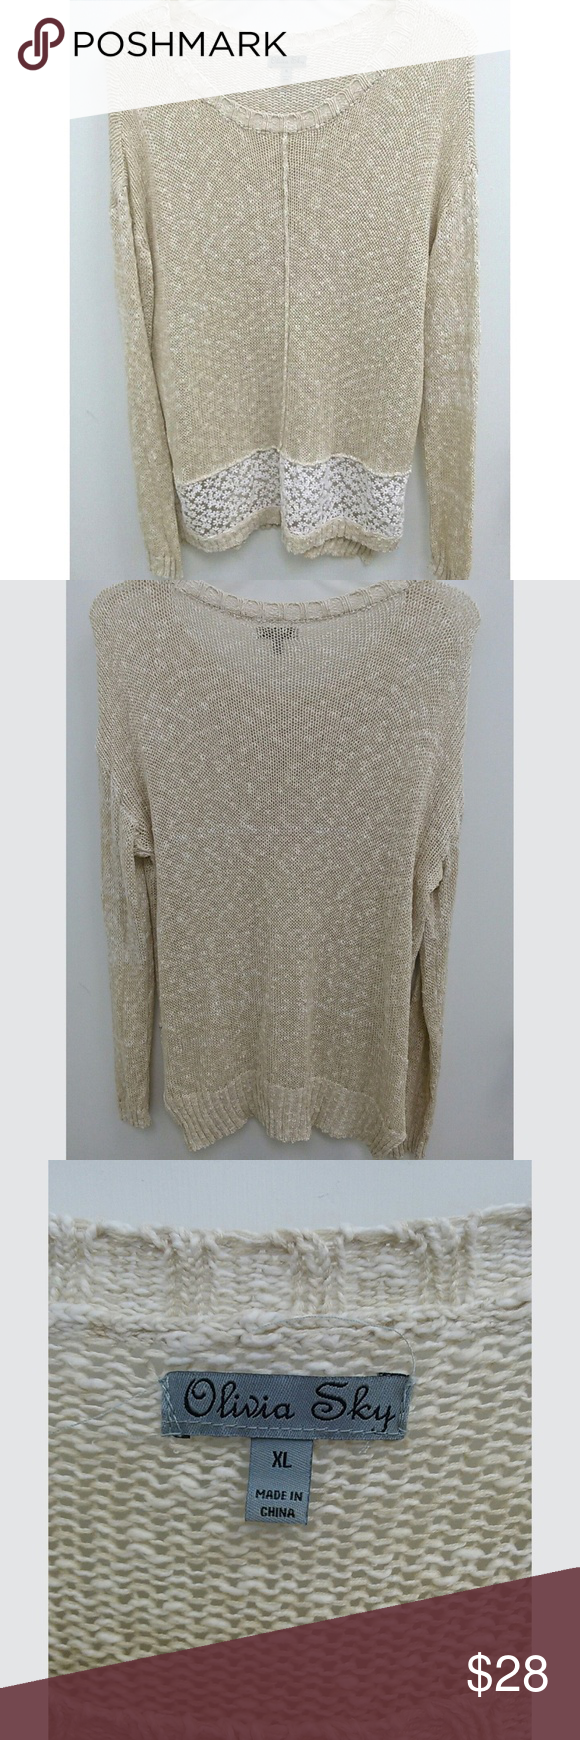 Olivia Sky XL Sweater Tunic Cream Lace Floral Olivia Sky Womens XL Sweater Tunic Cream Lace Floral Breathable Long Sleeve  This is a cream and white sweater tunic by Olivia Sky. Lace at front bottom with daisy pattern. Long sleeves, round neckline, pullover.   Size Plus XL Measures: Chest armpit to armpit laying flat 23